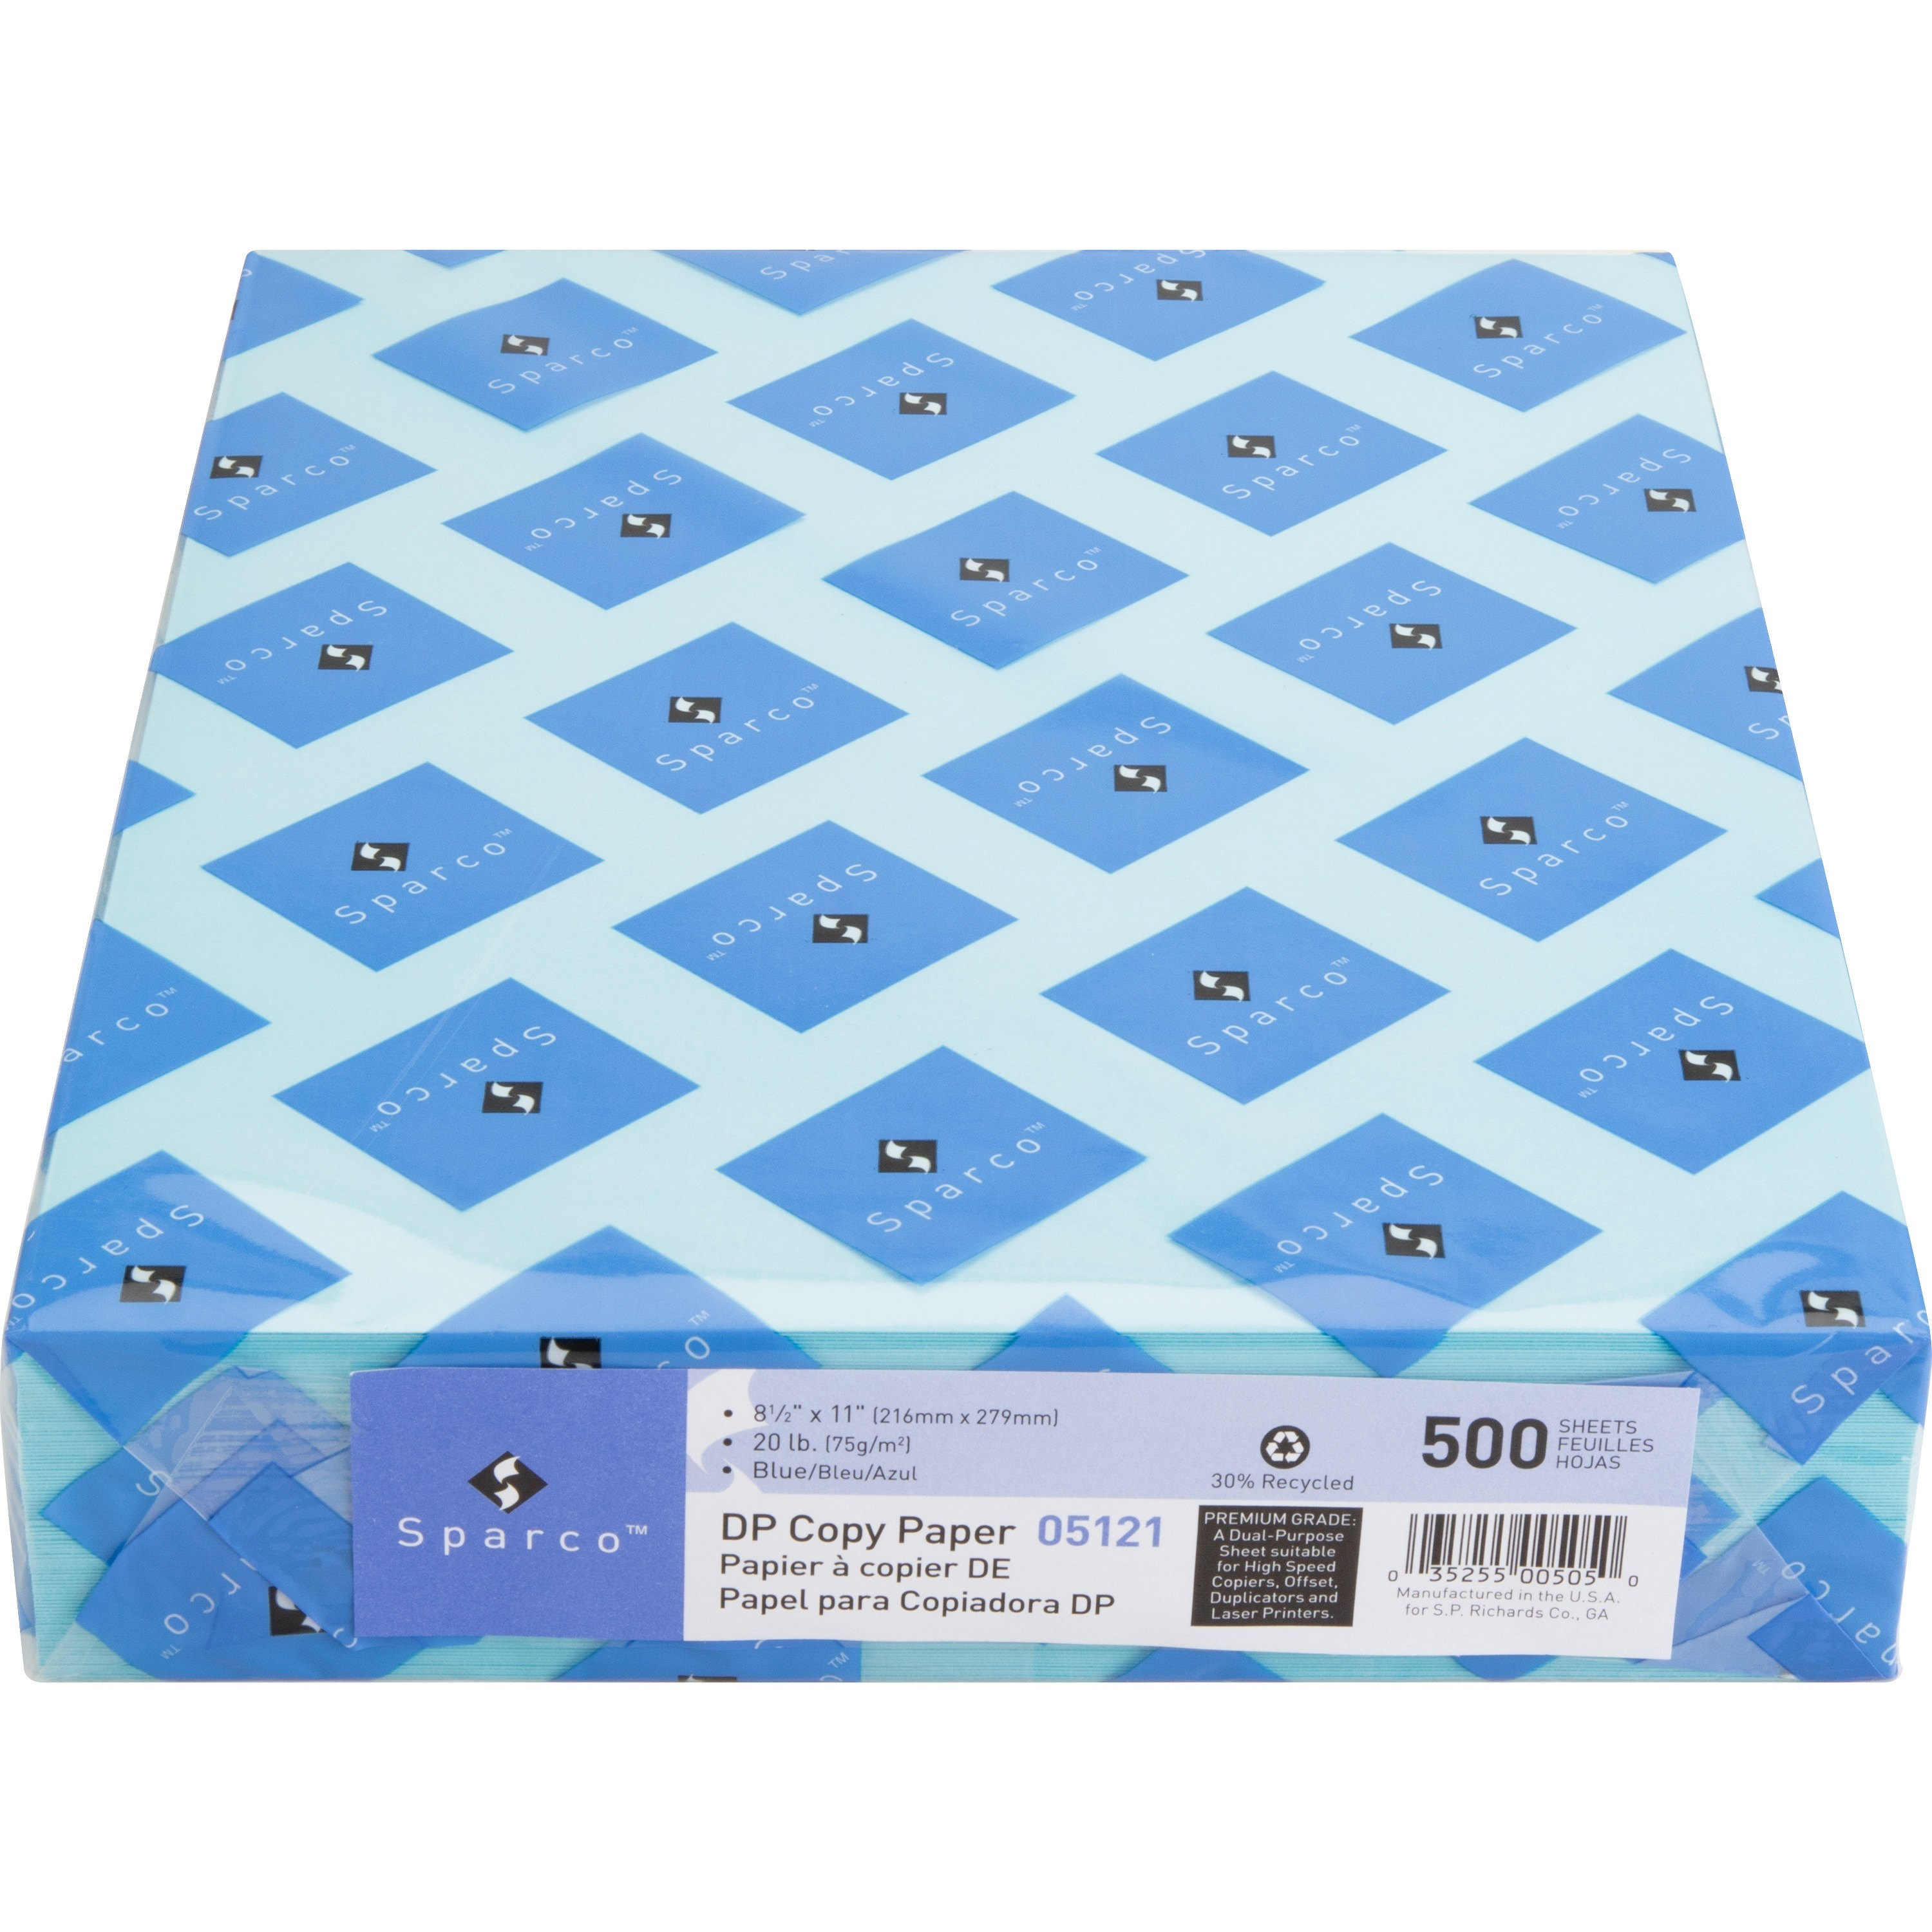 Sparco Laser Copy & Multipurpose Paper - 30% Recycled